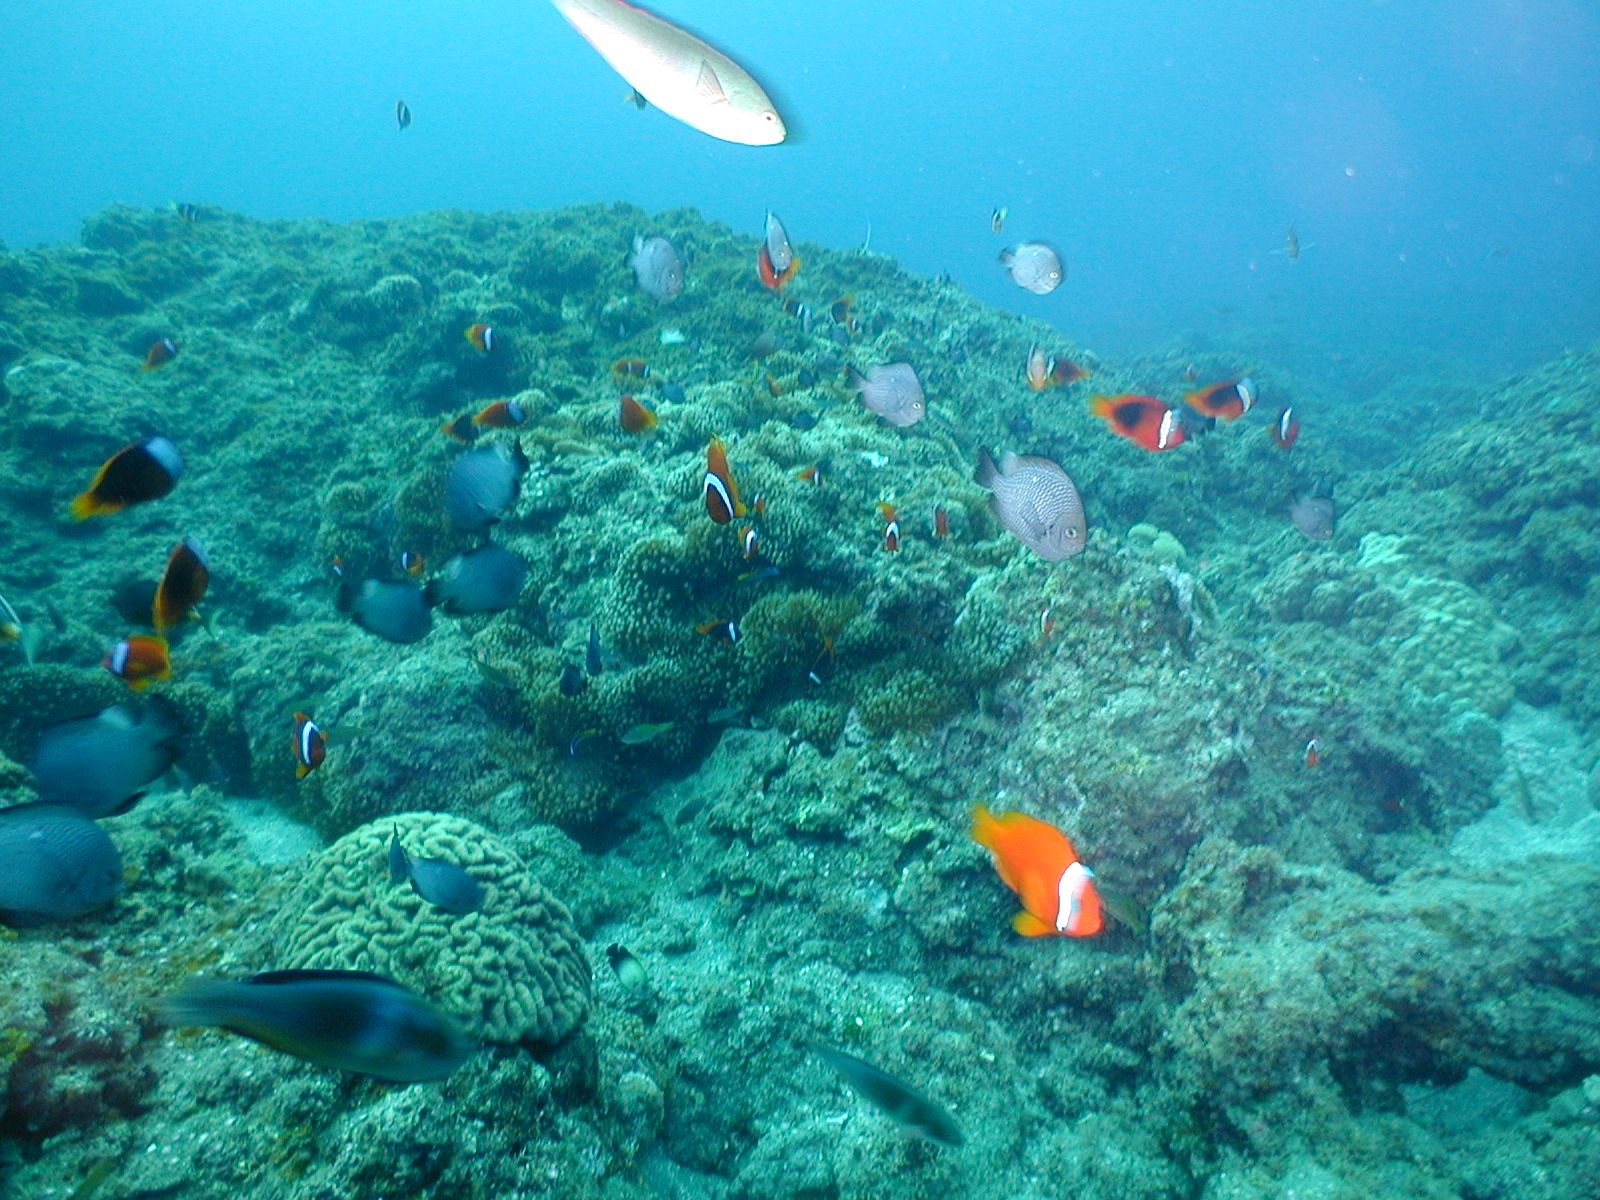 Sea organism and fish in diving